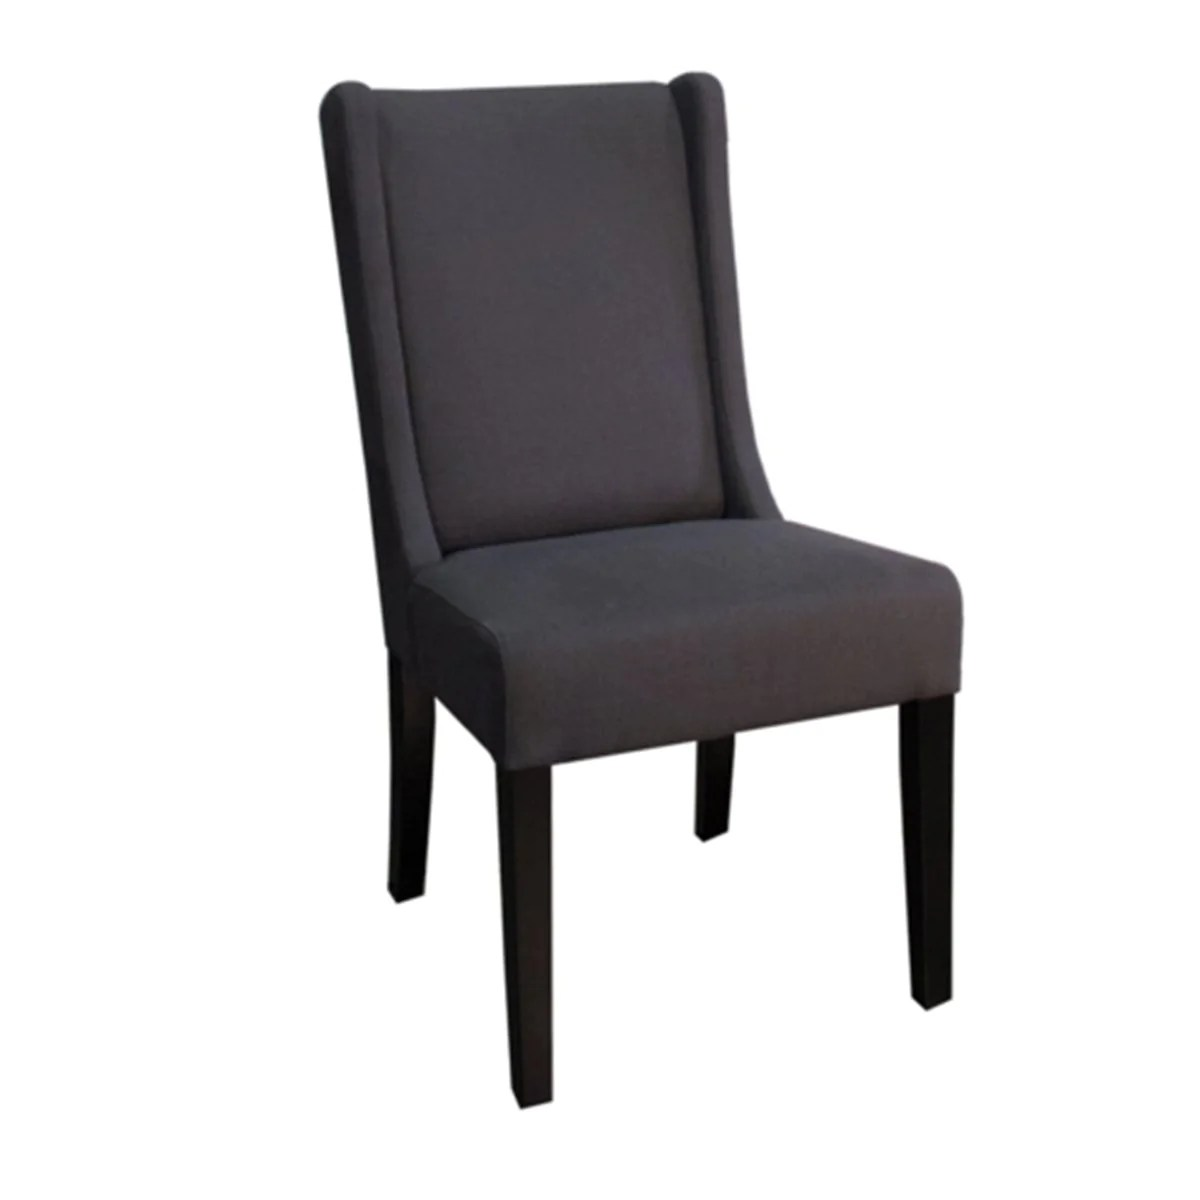 Tufted High Back Chair Non Tufted High Back Chair Graphite Fabric